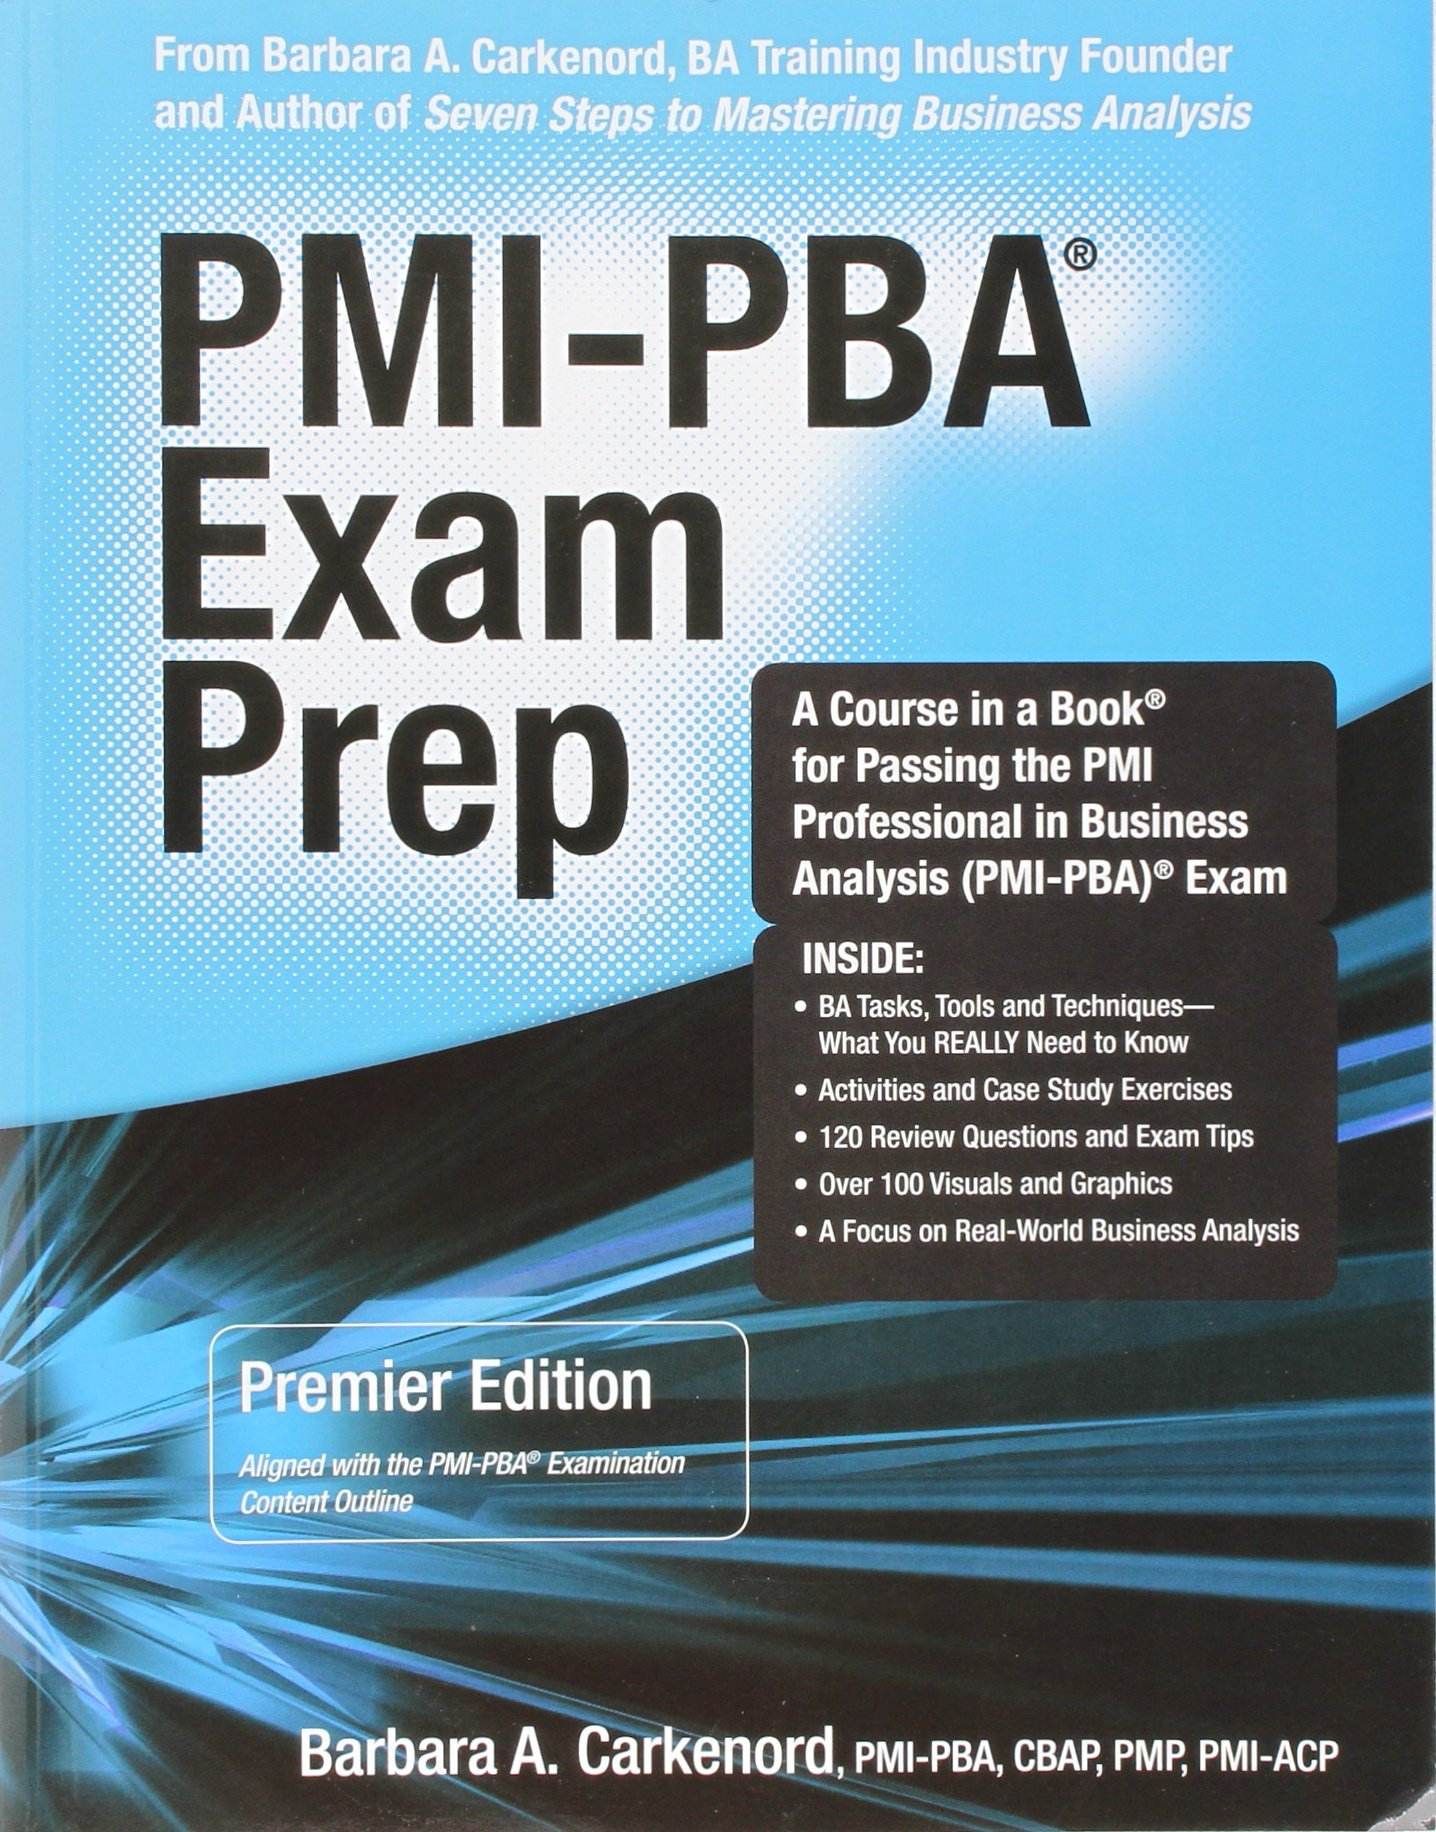 Pmi pba exam prep premier edition a course in a book for passing pmi pba exam prep premier edition a course in a book for passing the pmi professional in business analysis pmi pba exam barbara a carkenord 1betcityfo Images